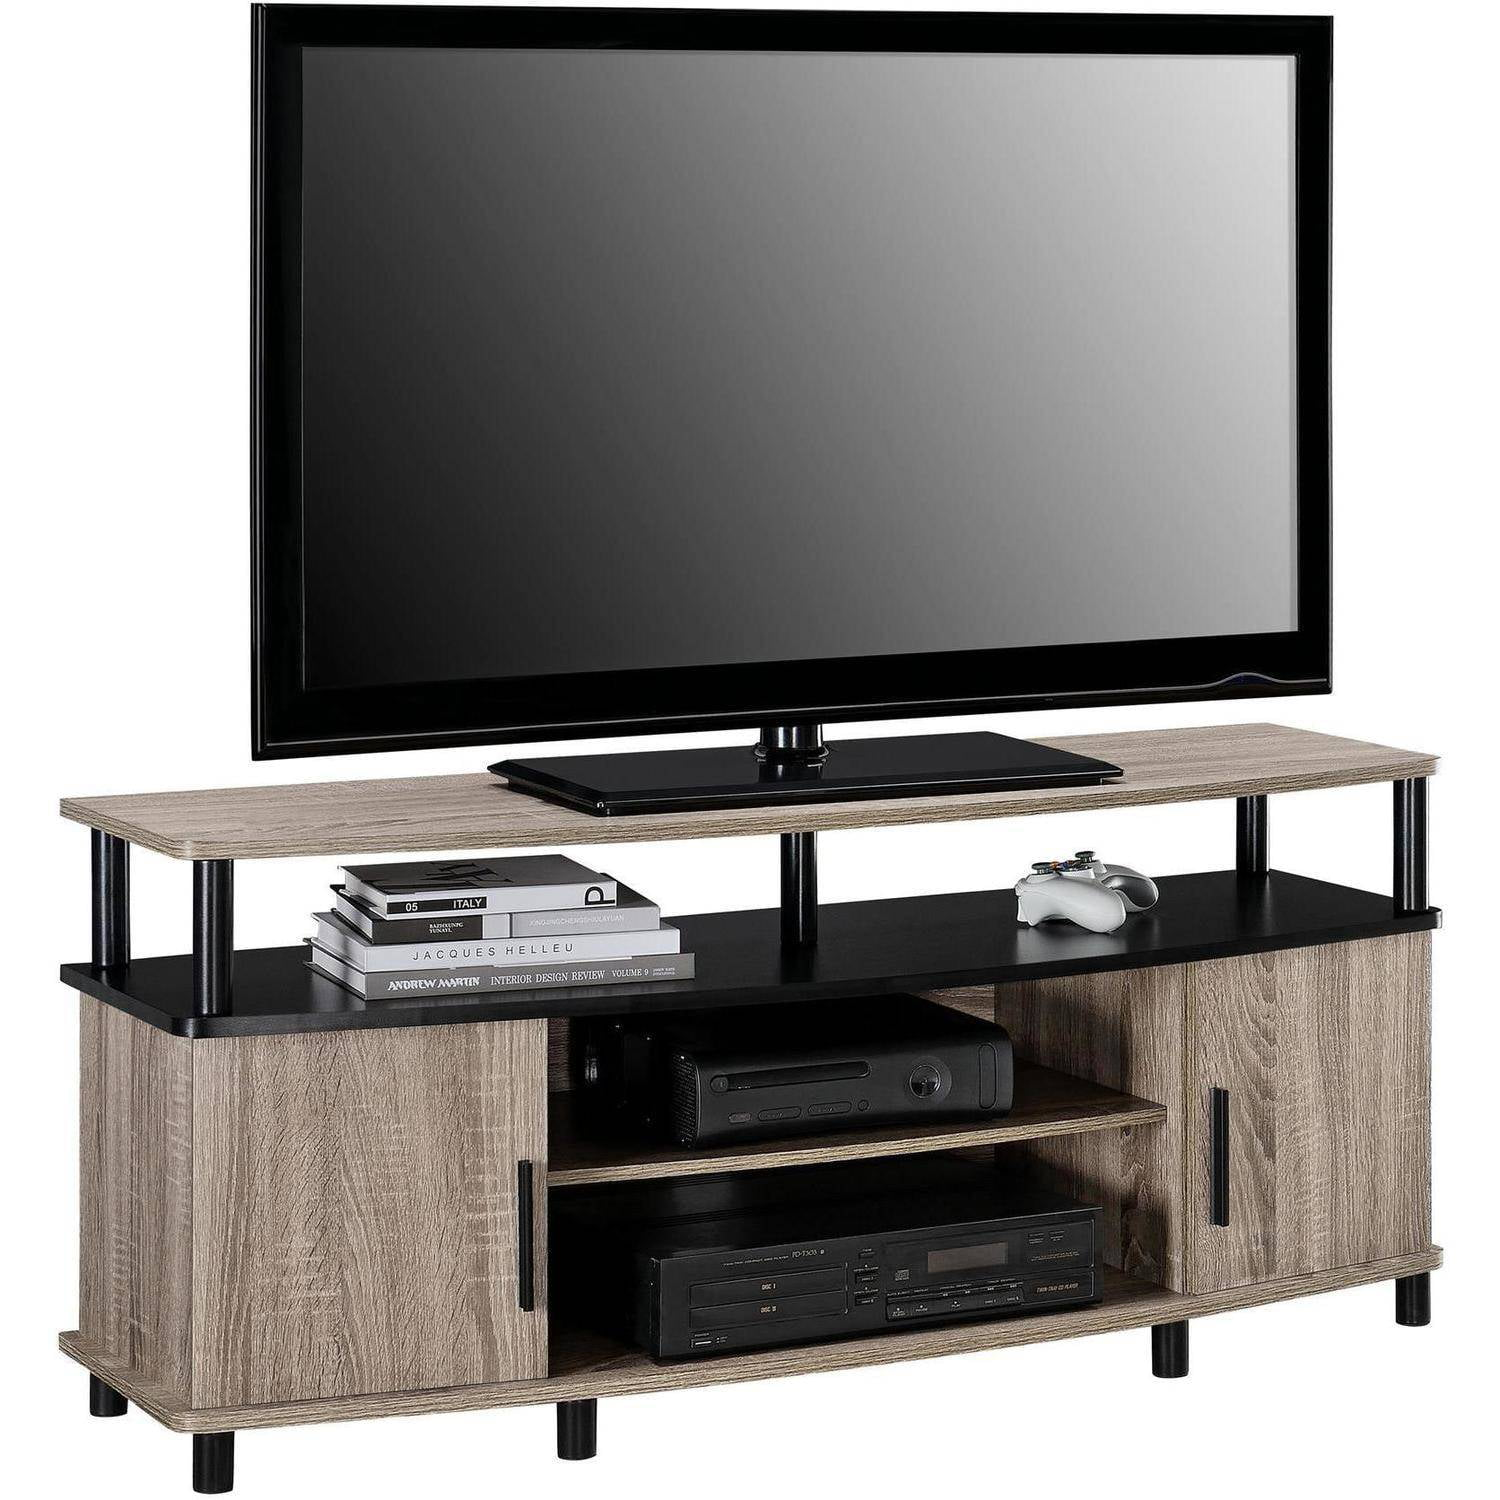 tv stand oak carson sonoma for tvs up to 50 living room modern altra ebay. Black Bedroom Furniture Sets. Home Design Ideas